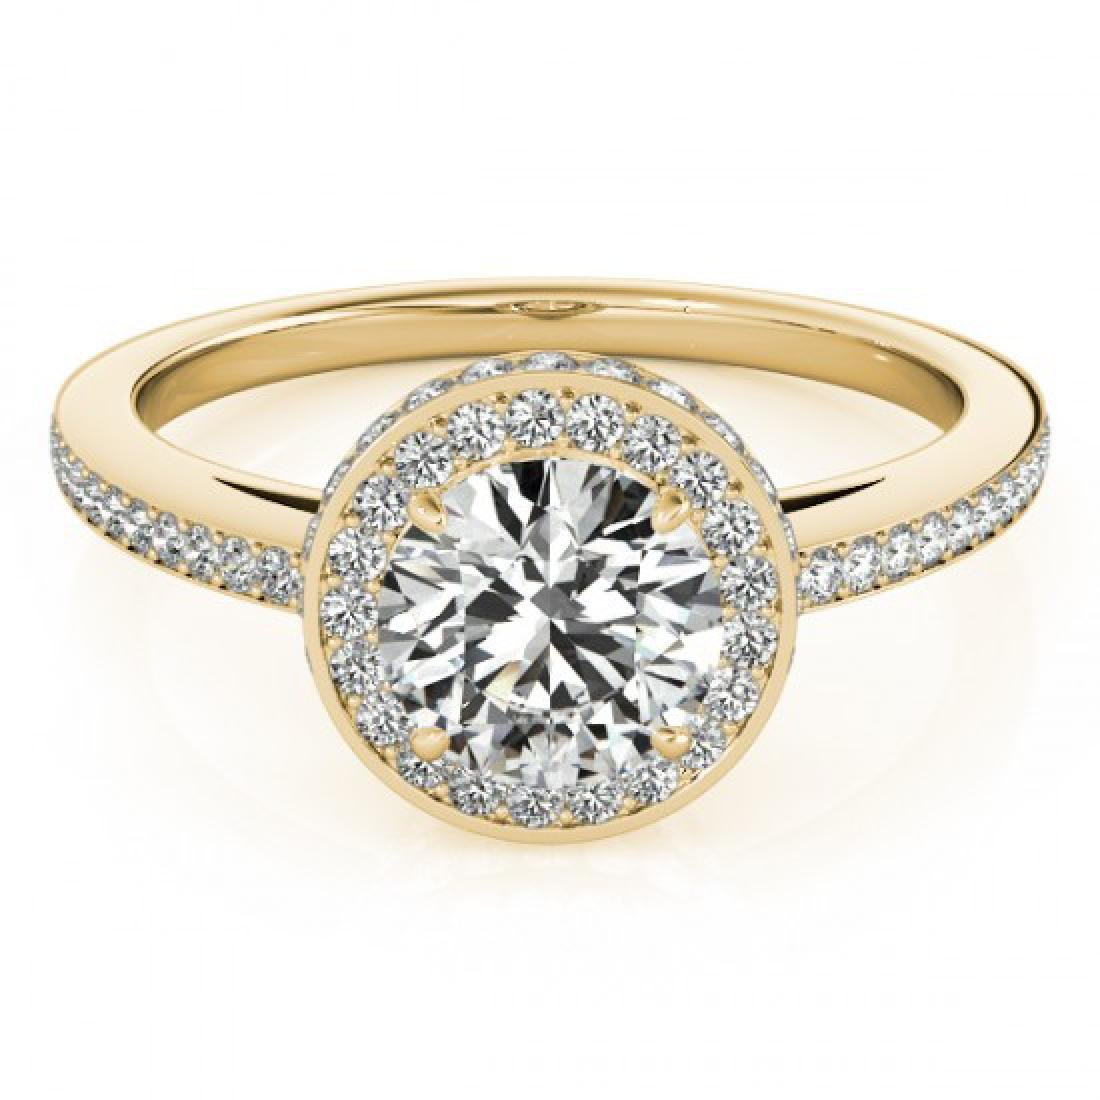 1.55 CTW Certified VS/SI Diamond Solitaire Halo Ring